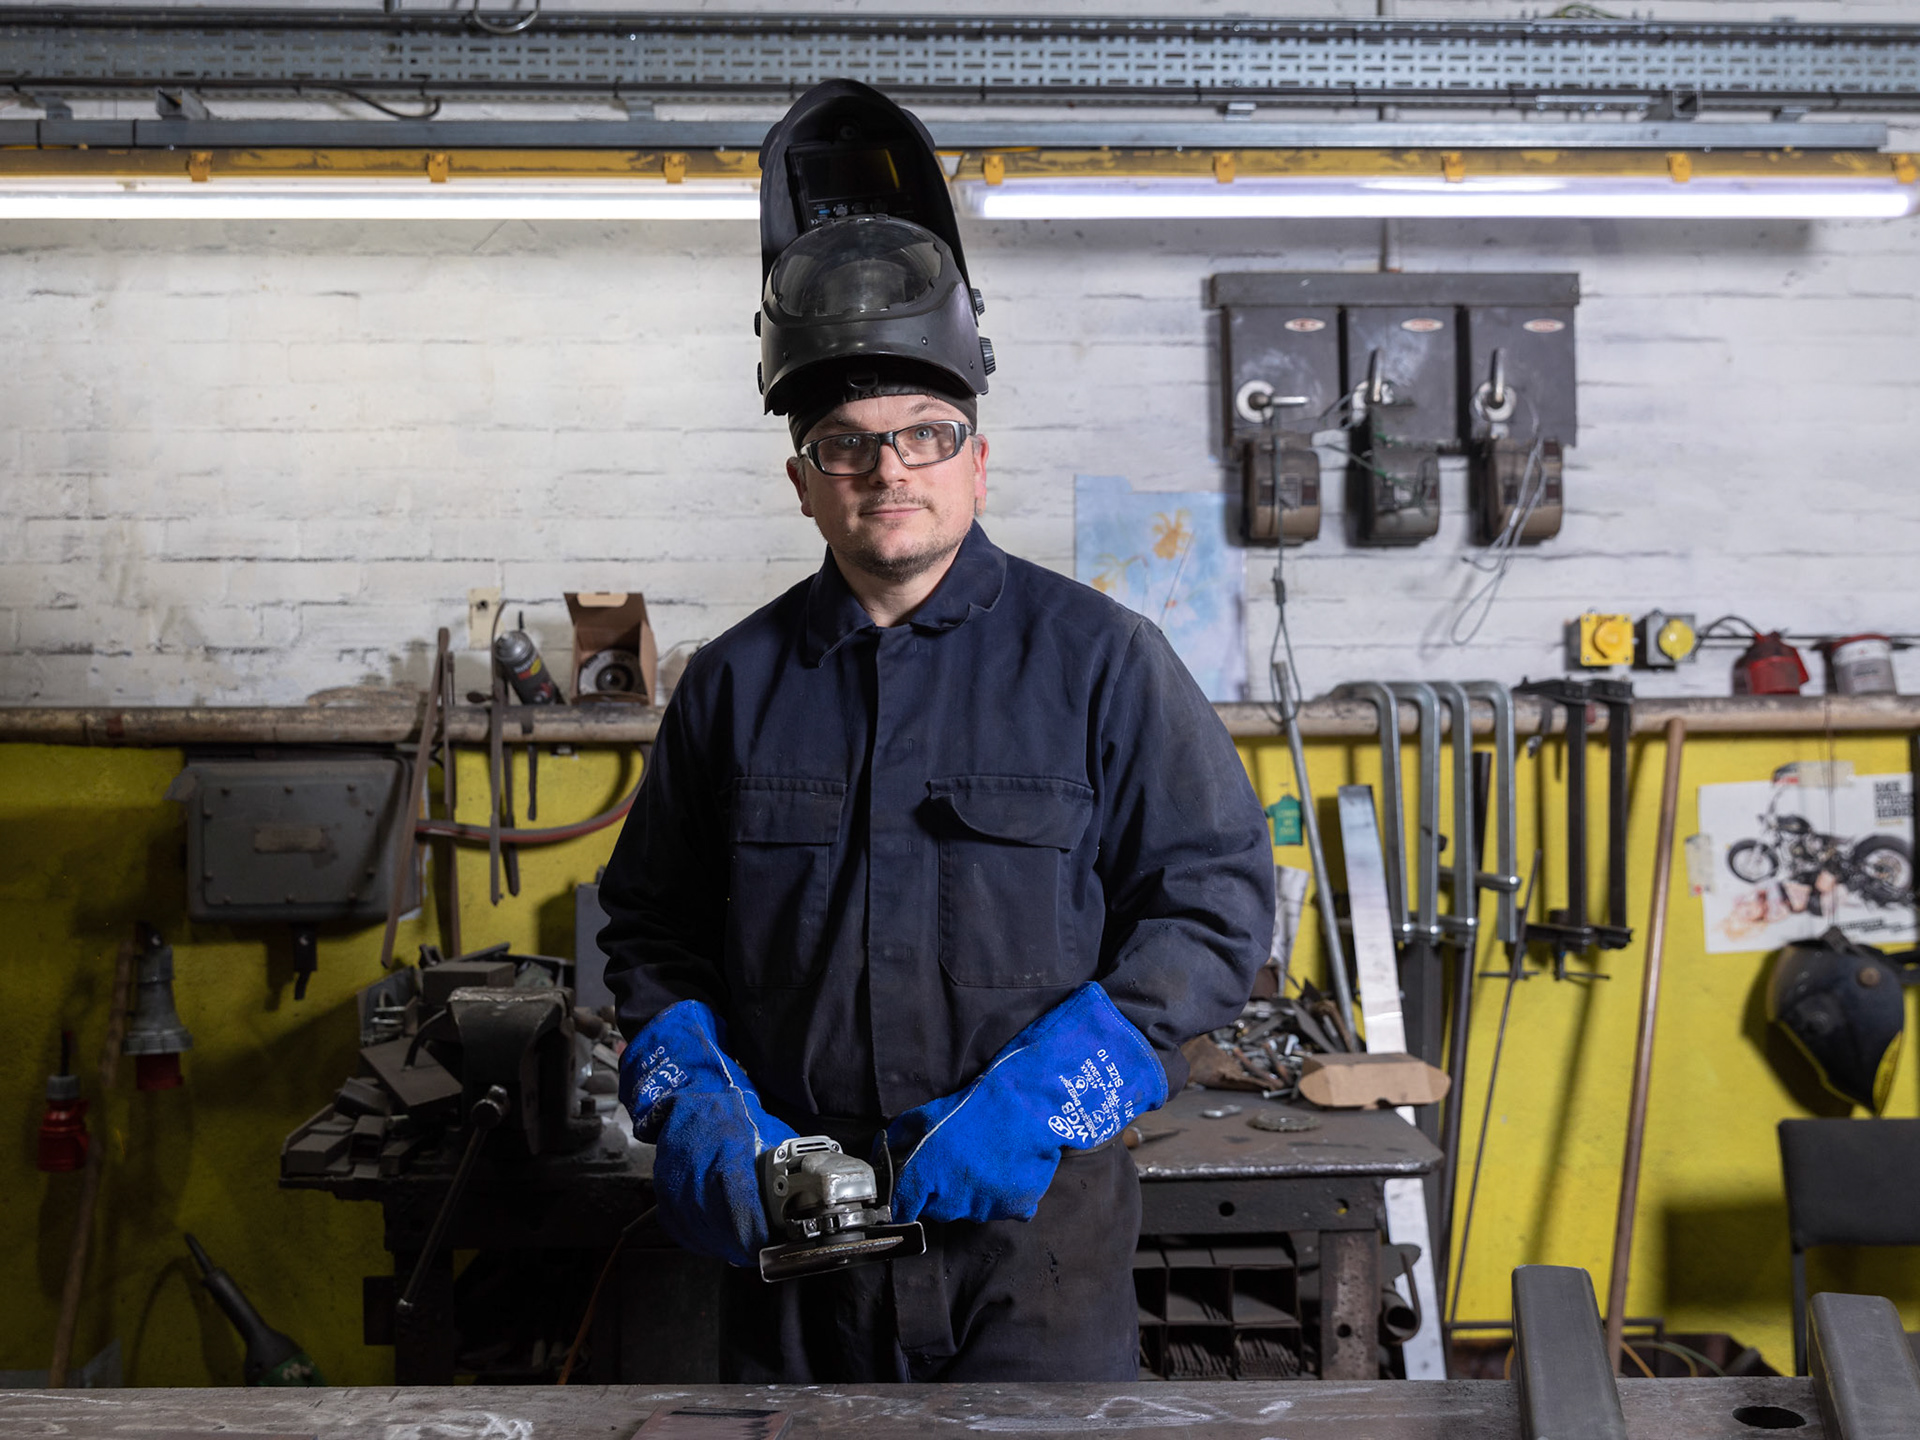 Commercial Photography Industrial Portrait steel worker with welding hat holding angle grinder